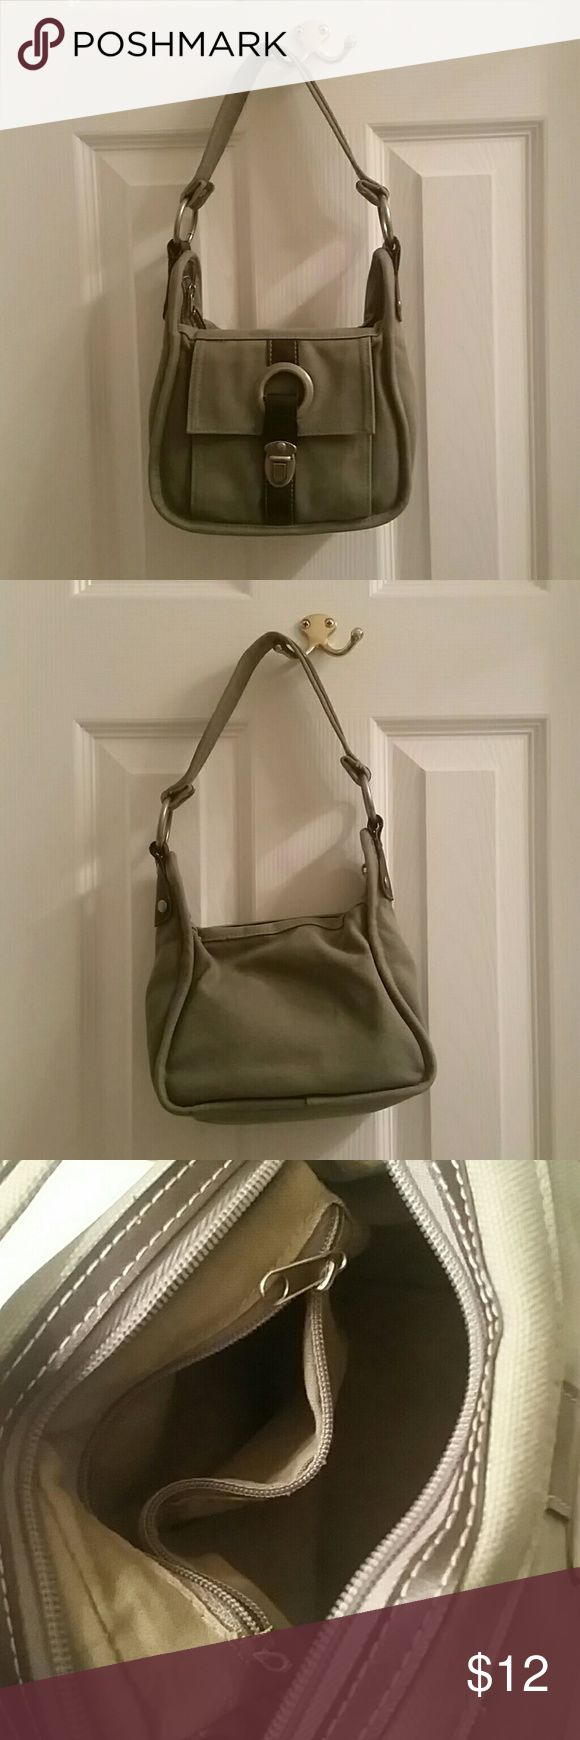 American Eagle Green & Brown Purse Cute green and brown American Eagle purse. In great condition. Has 2 small pockets inside. One pocket outside. American Eagle Outfitters Bags Shoulder Bags